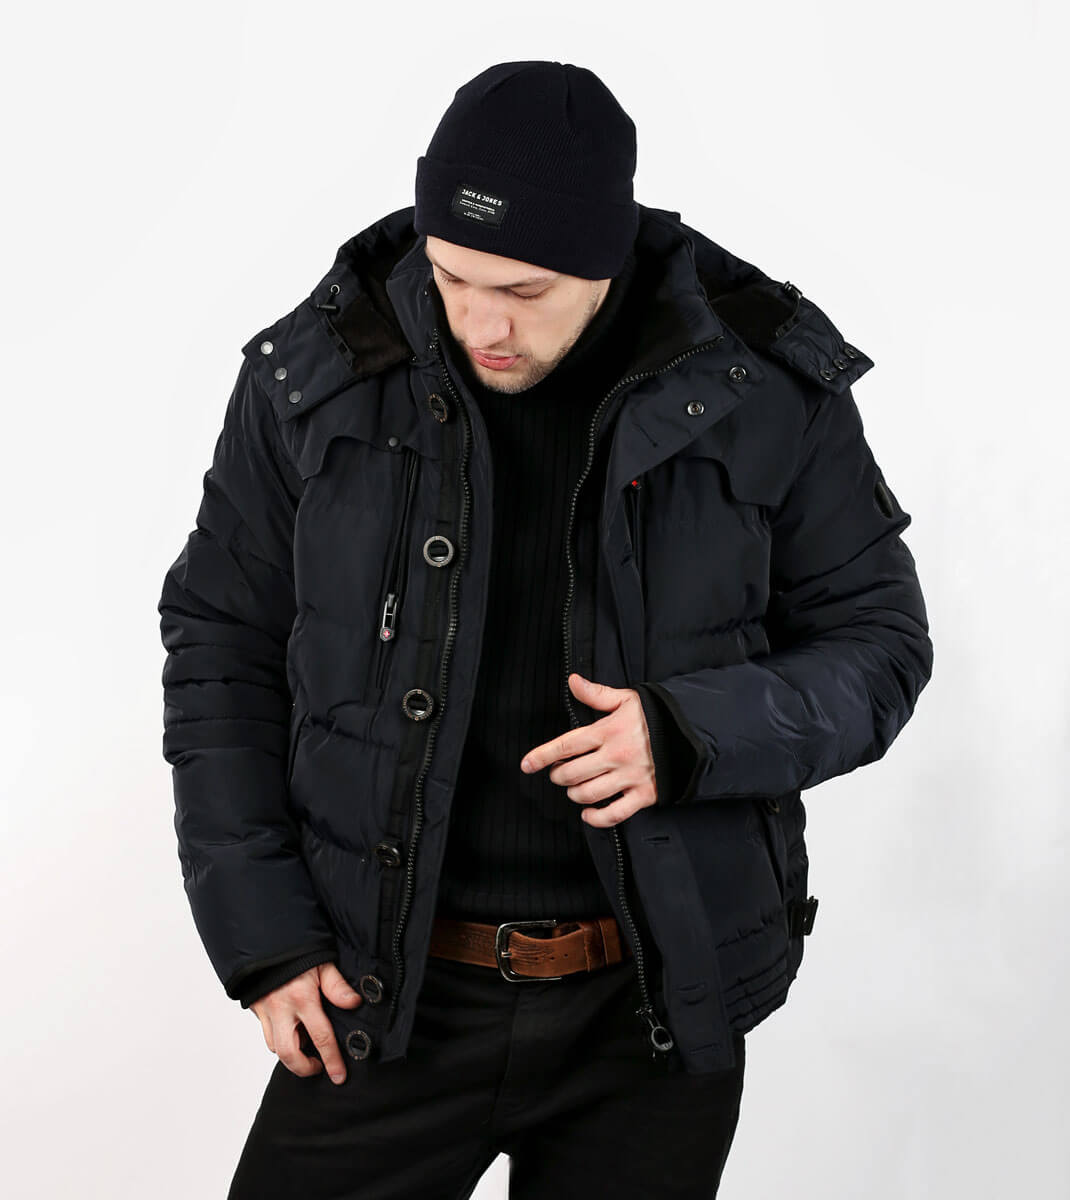 Wellensteyn damen winterjacke ratenzahlung